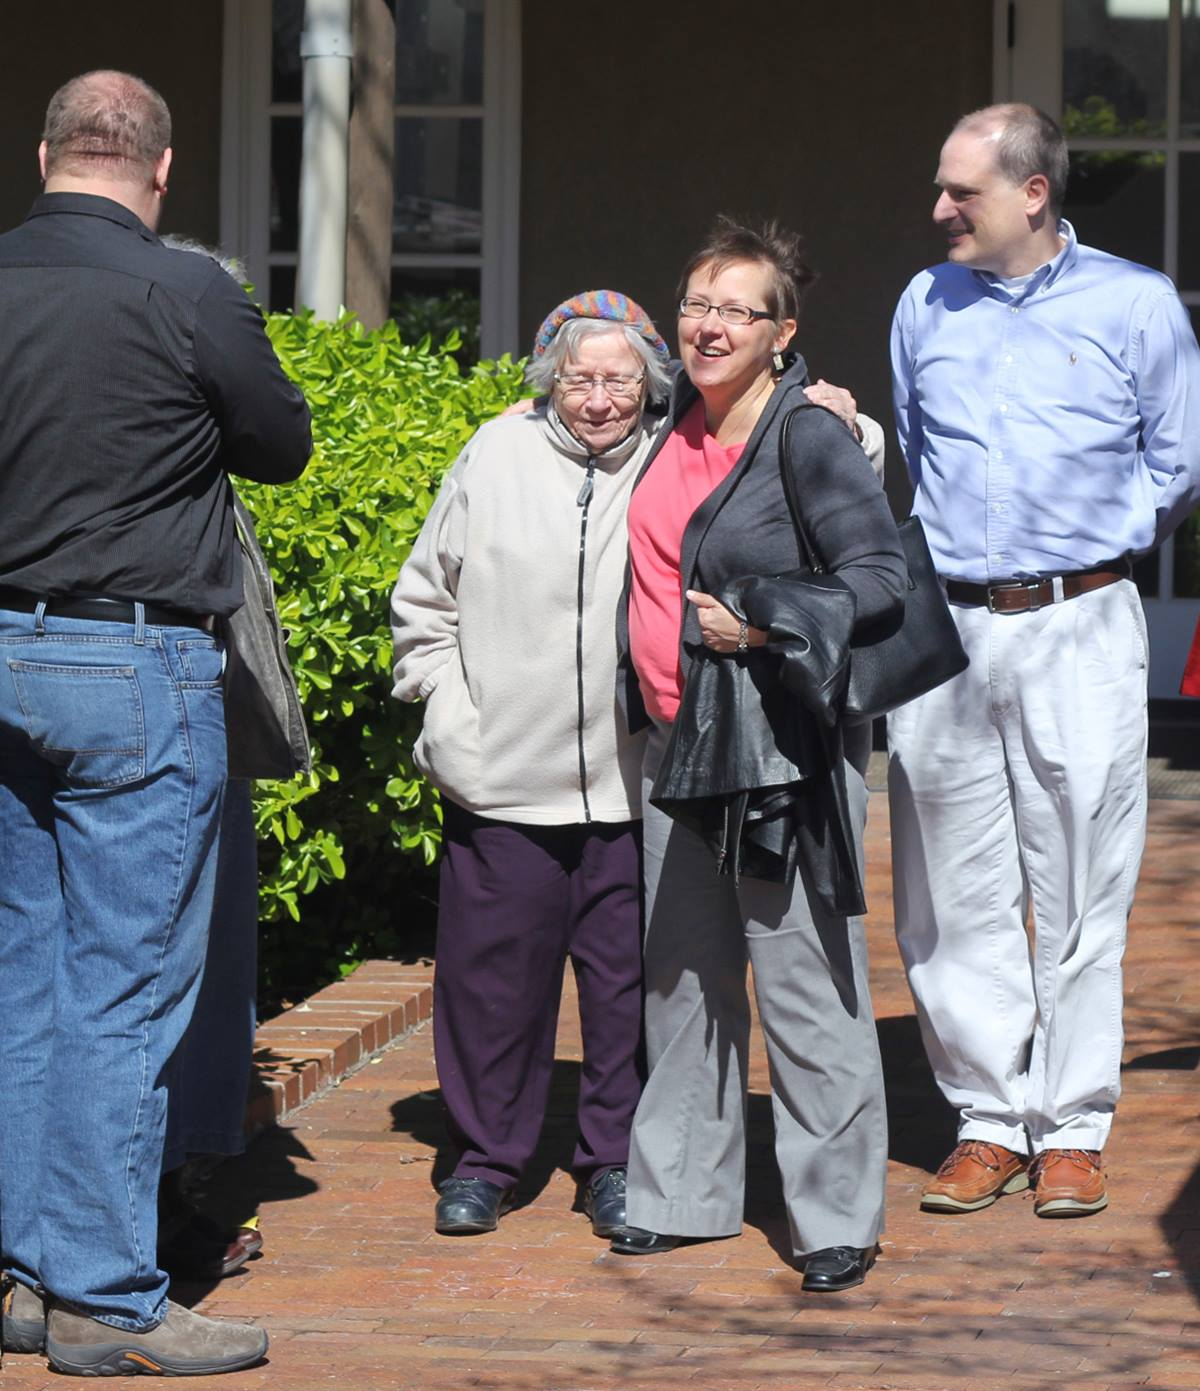 """The Rev. Cynthia Meyer (second from right) gets a hug and well wishes from supporters after a meeting with United Methodist Bishop Scott Jones March 28 in Wichita, Kan. Meyer faces church disciplinary charges after she announced she was in a """"committed relationship"""" with another woman."""